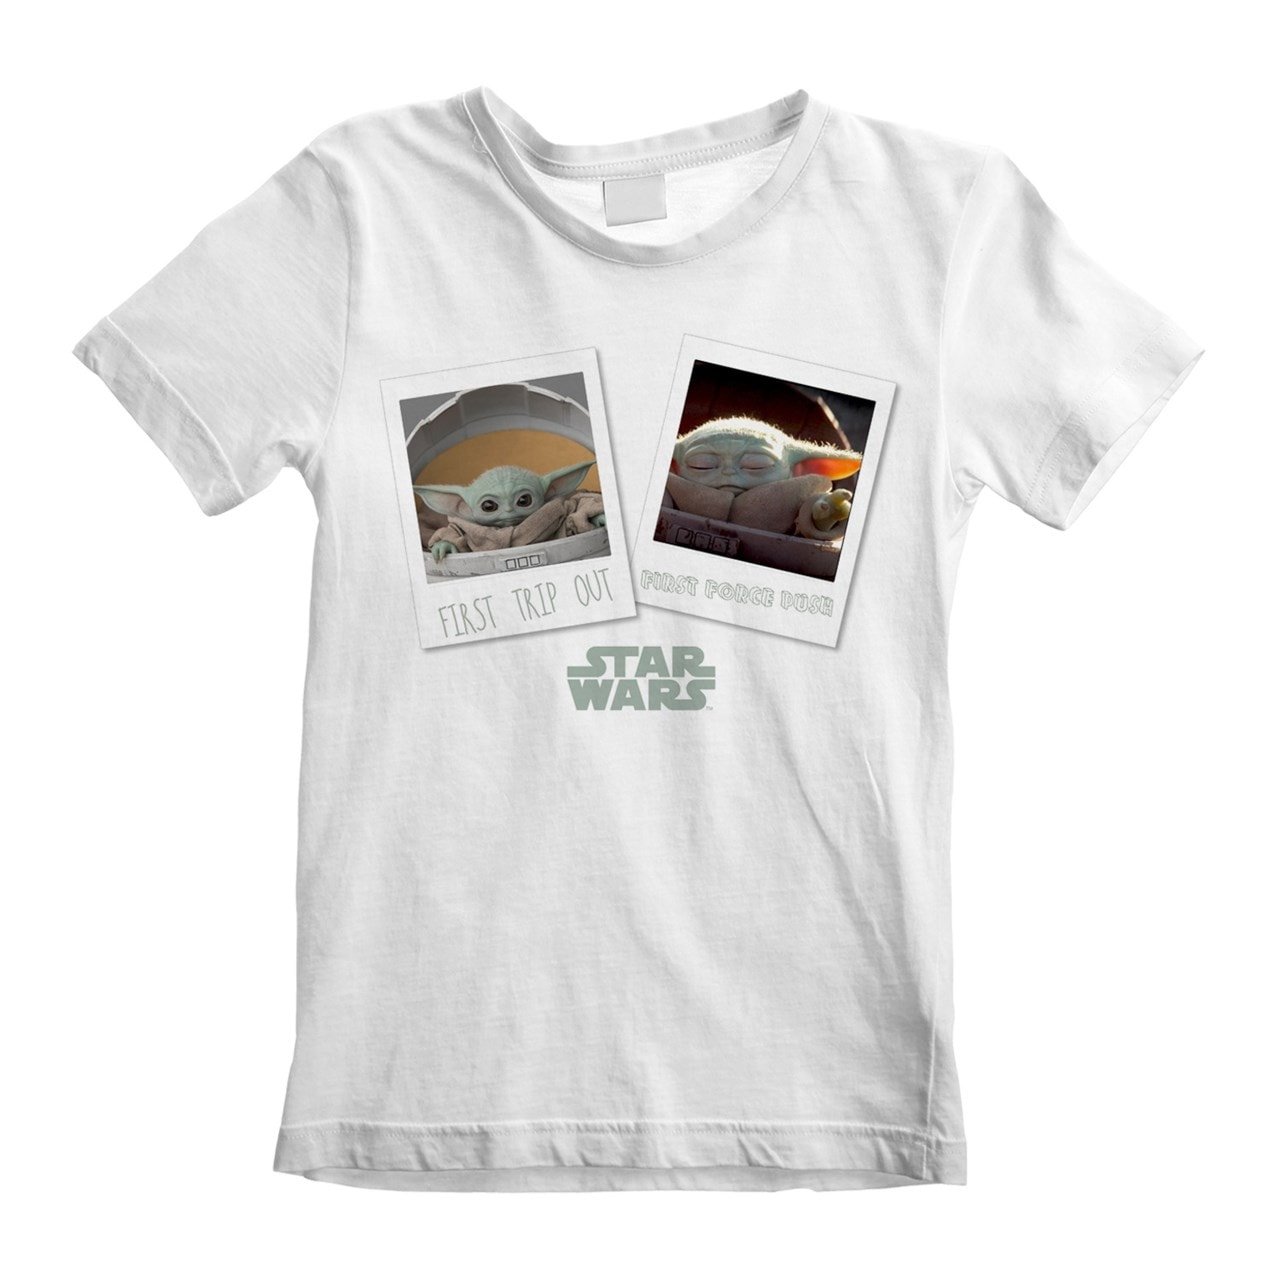 Star Wars: The Mandalorian: First Day Out (Kids Tee) (3-4YR) - 1